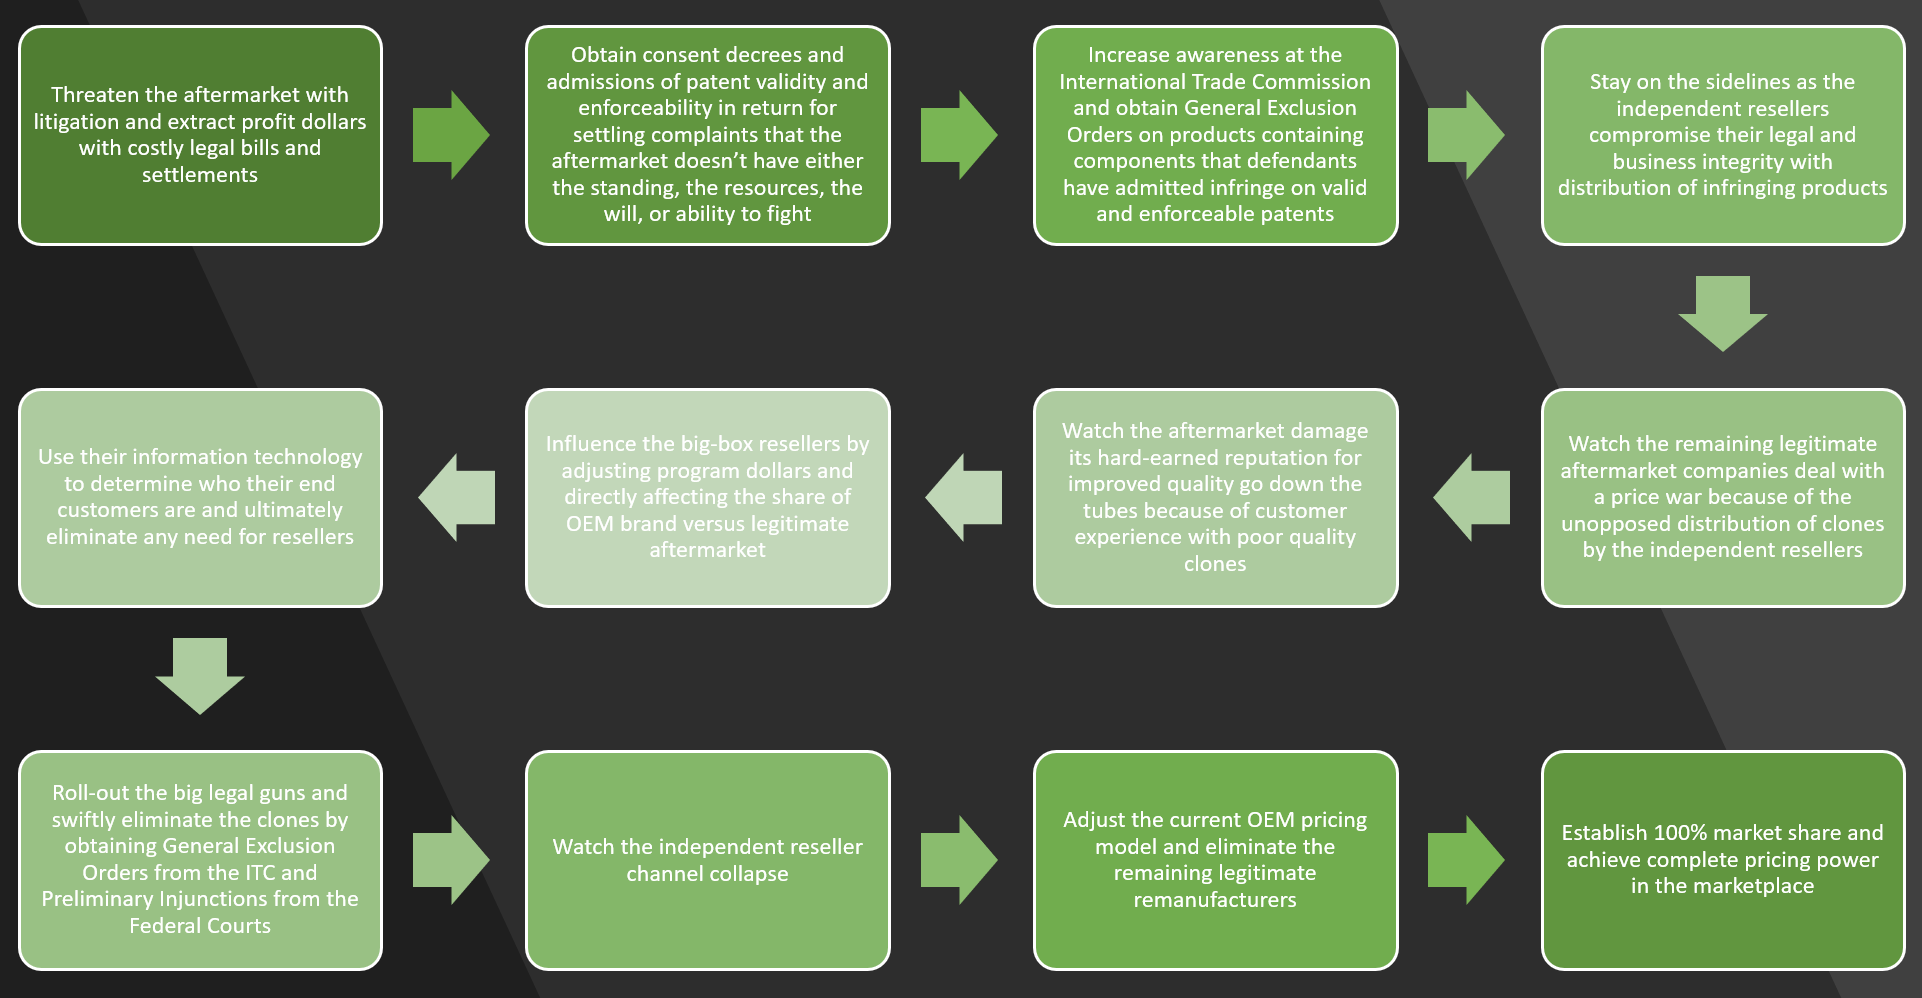 Sequence of Steps to Eliminate the Aftermarket_2.png